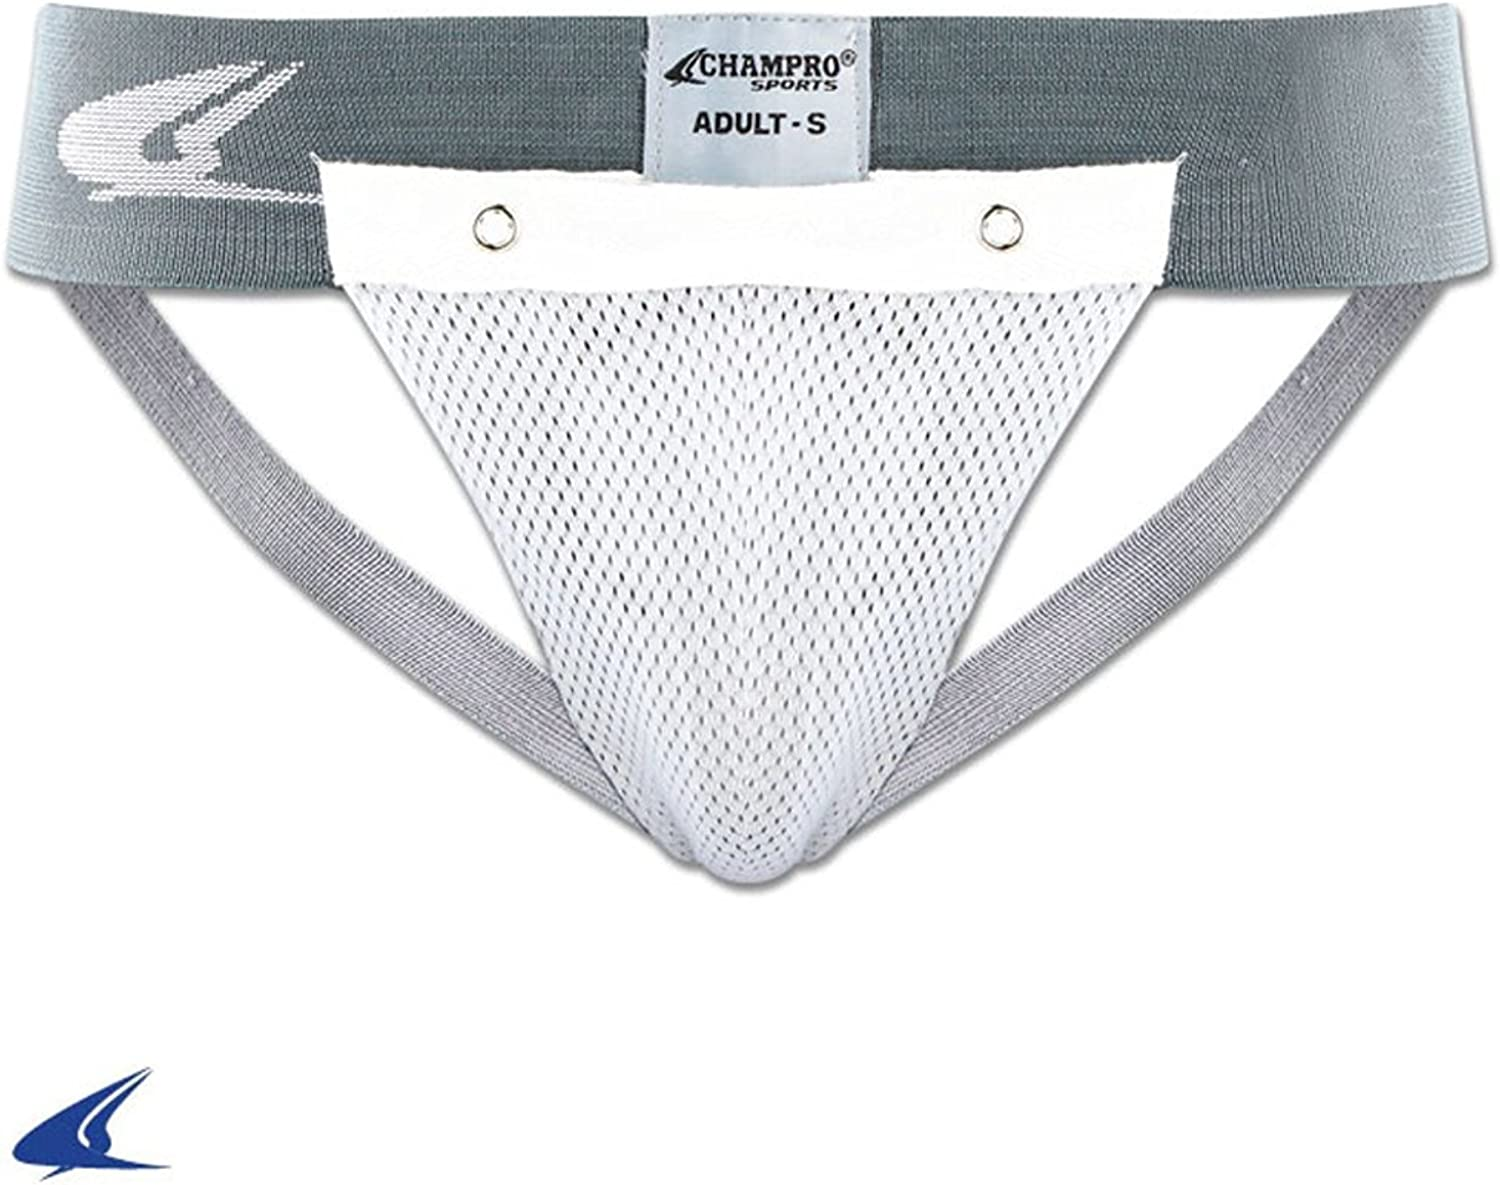 Champro Jock Strap Athletic Supporter Youth for Hard Cup Athletic Supporter Banana Style Hard Cup